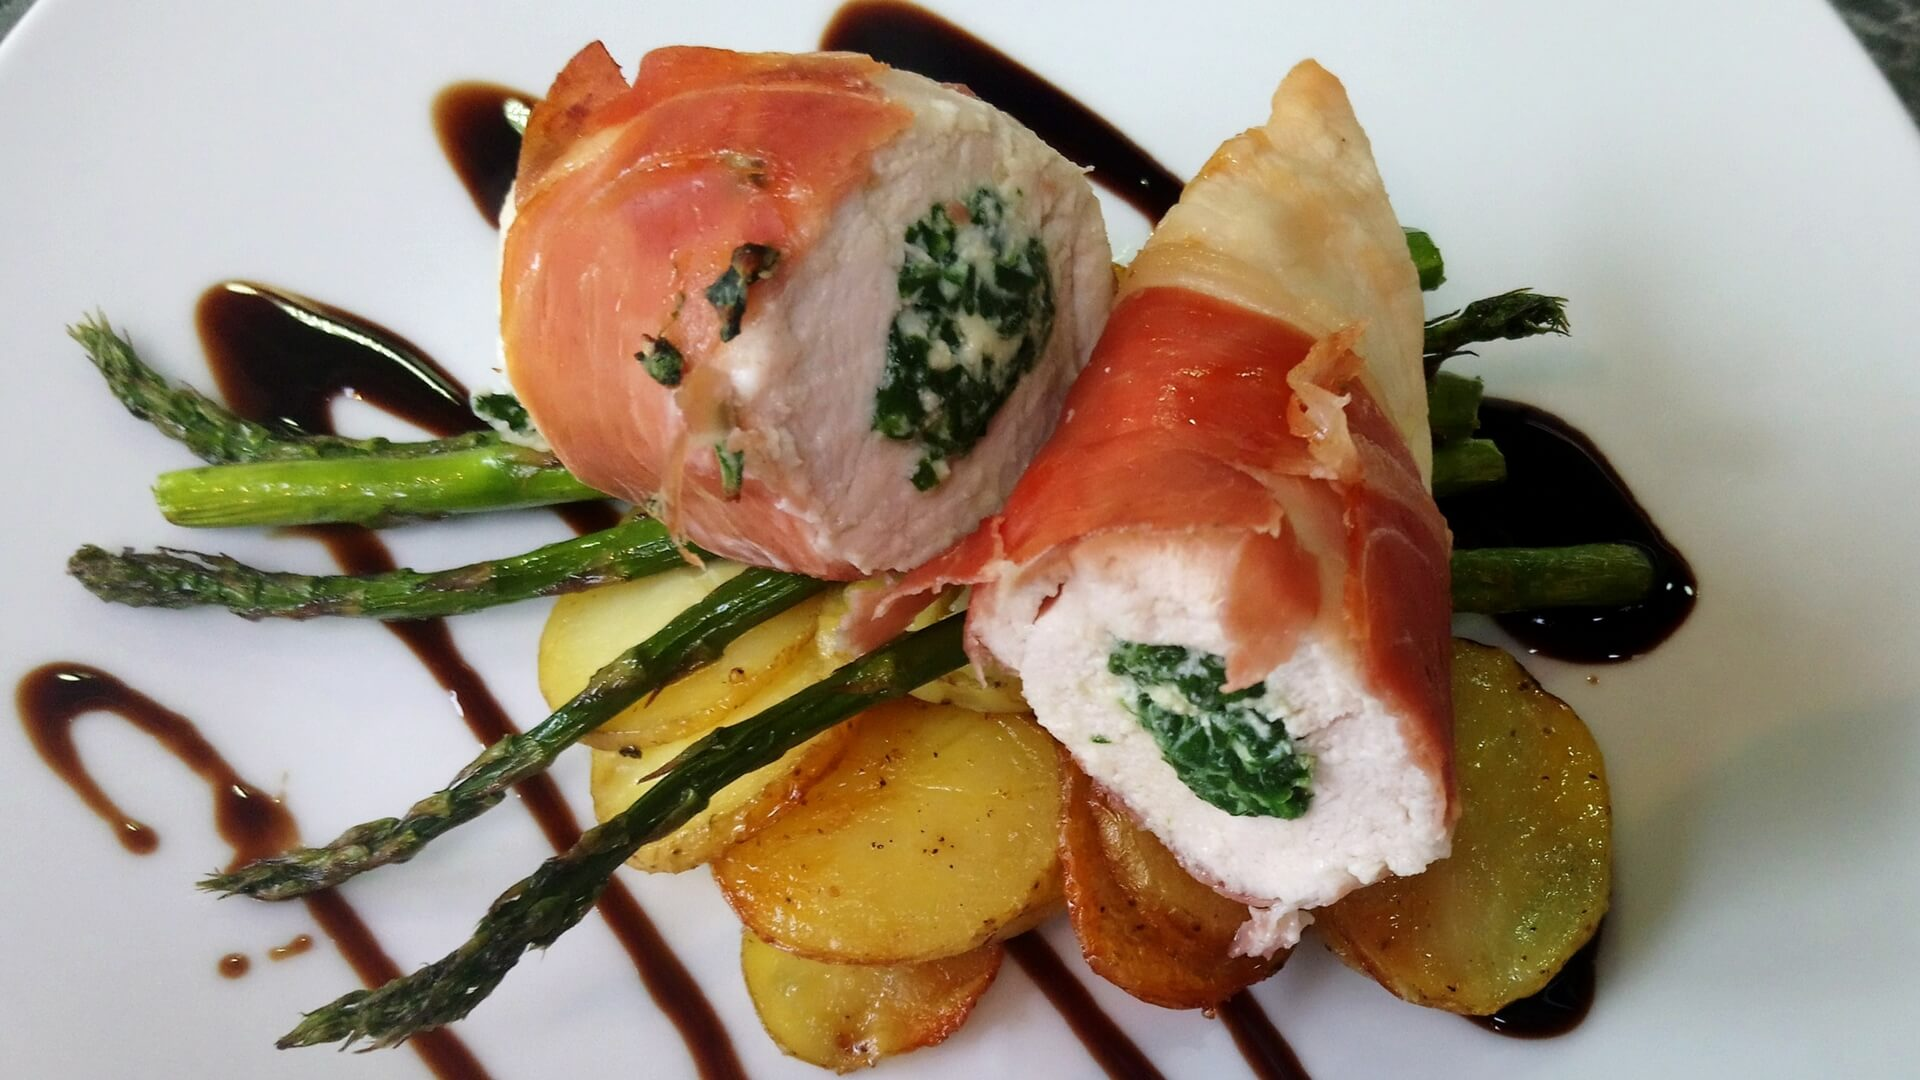 Spinach and ricotta stuffed chicken breast